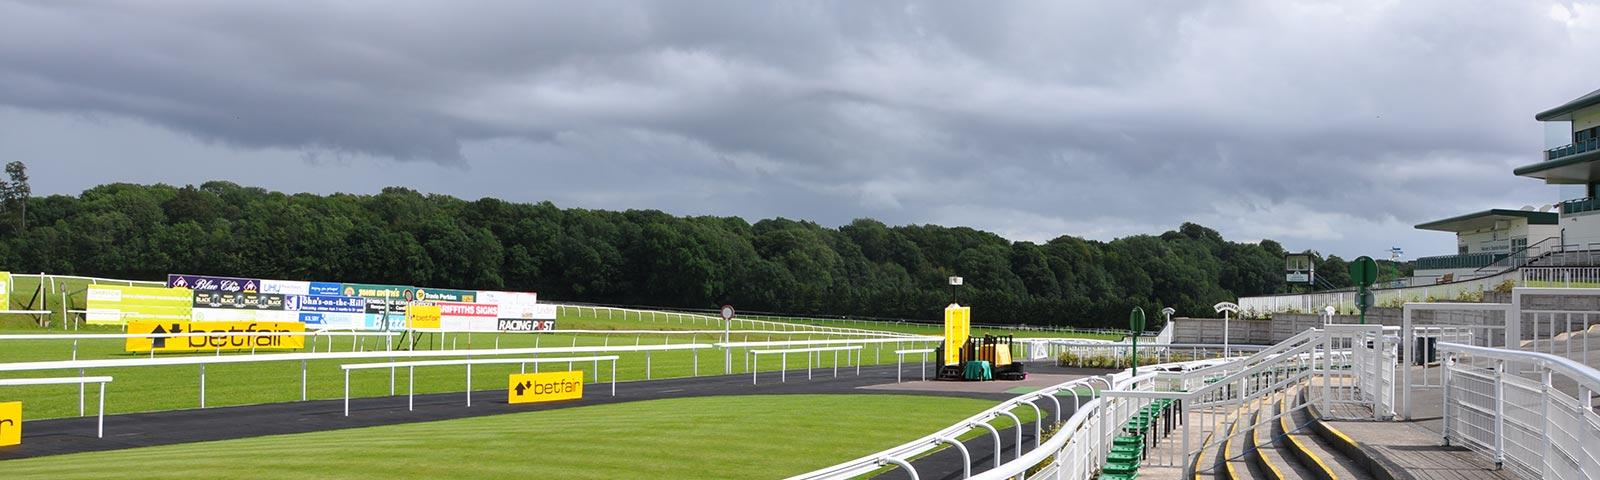 View of the race track at Chepstow Racecourse.